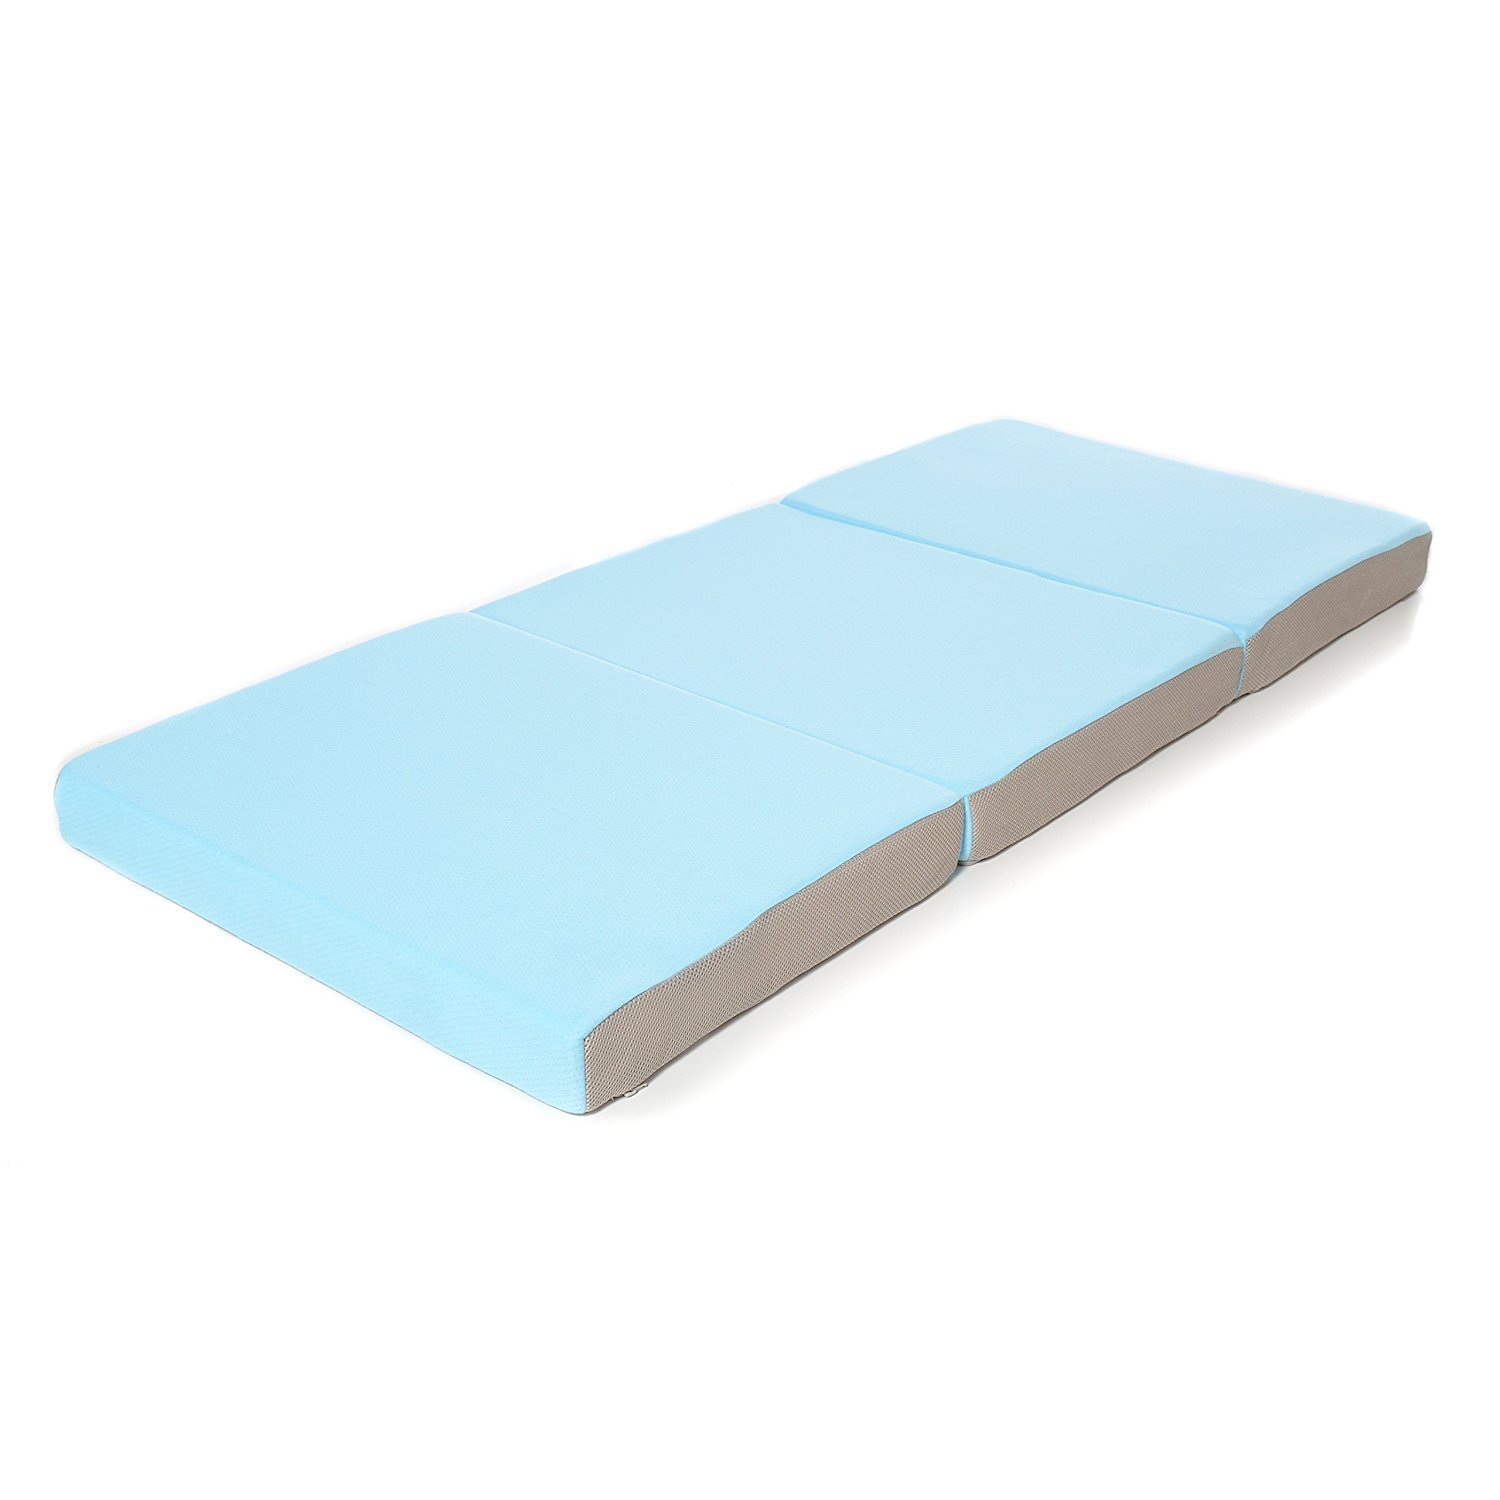 Milliard Toddler Nap Mat, Folding Foam Mattress with Soft Removable Cover - High Density Foam (24 x 57 x 3 inches)